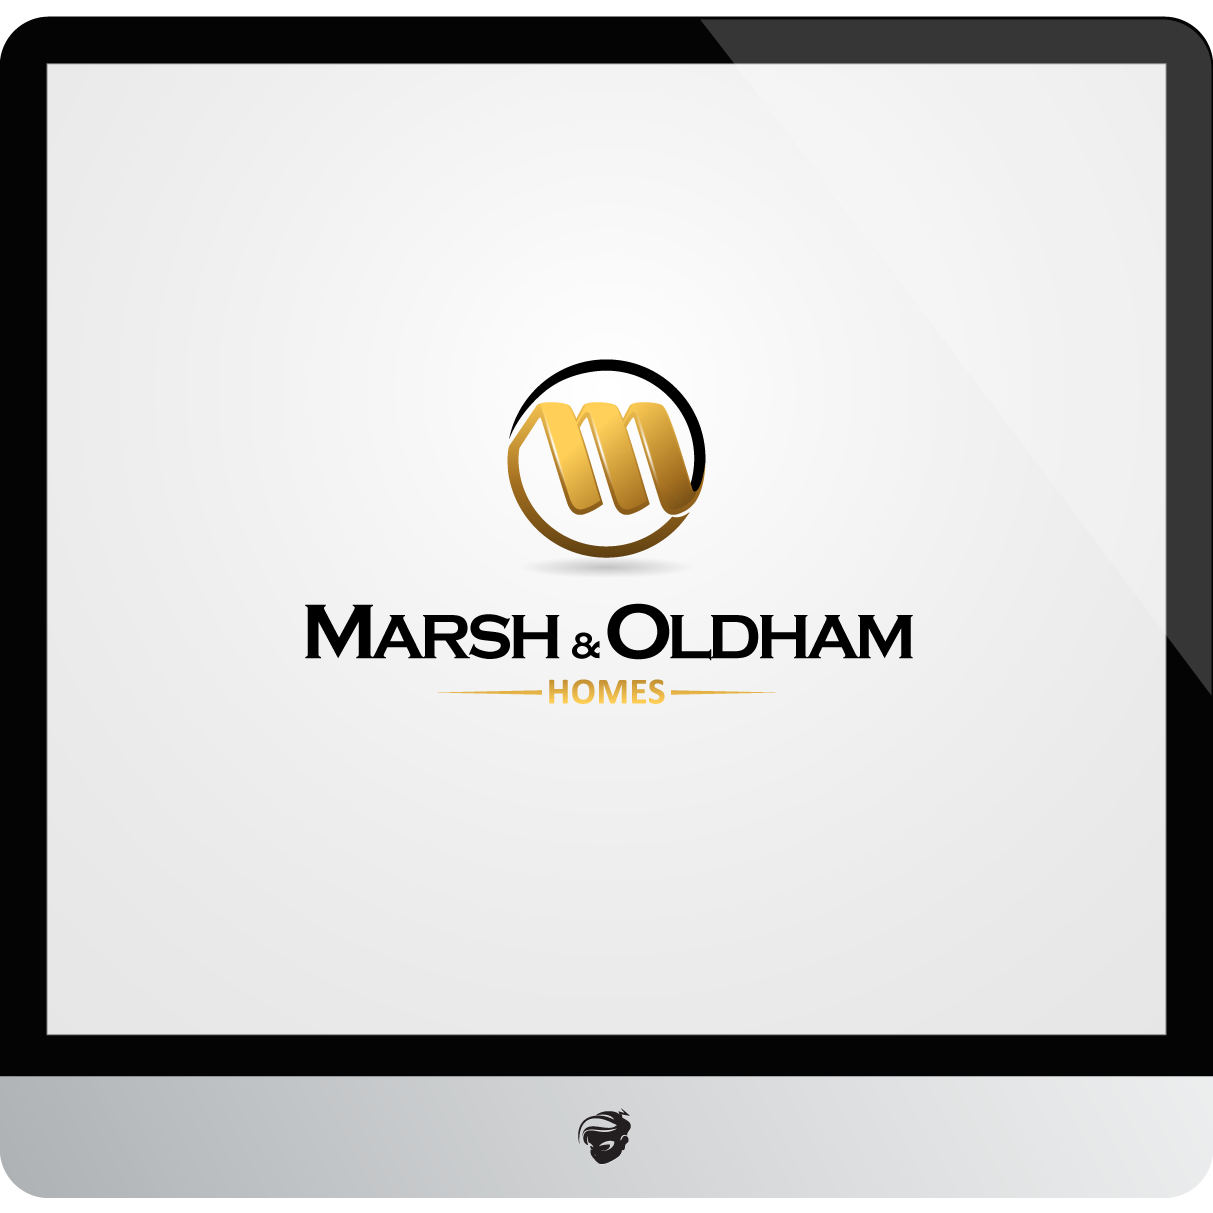 Logo Design by zesthar - Entry No. 159 in the Logo Design Contest Artistic Logo Design for Marsh & Oldham Homes.